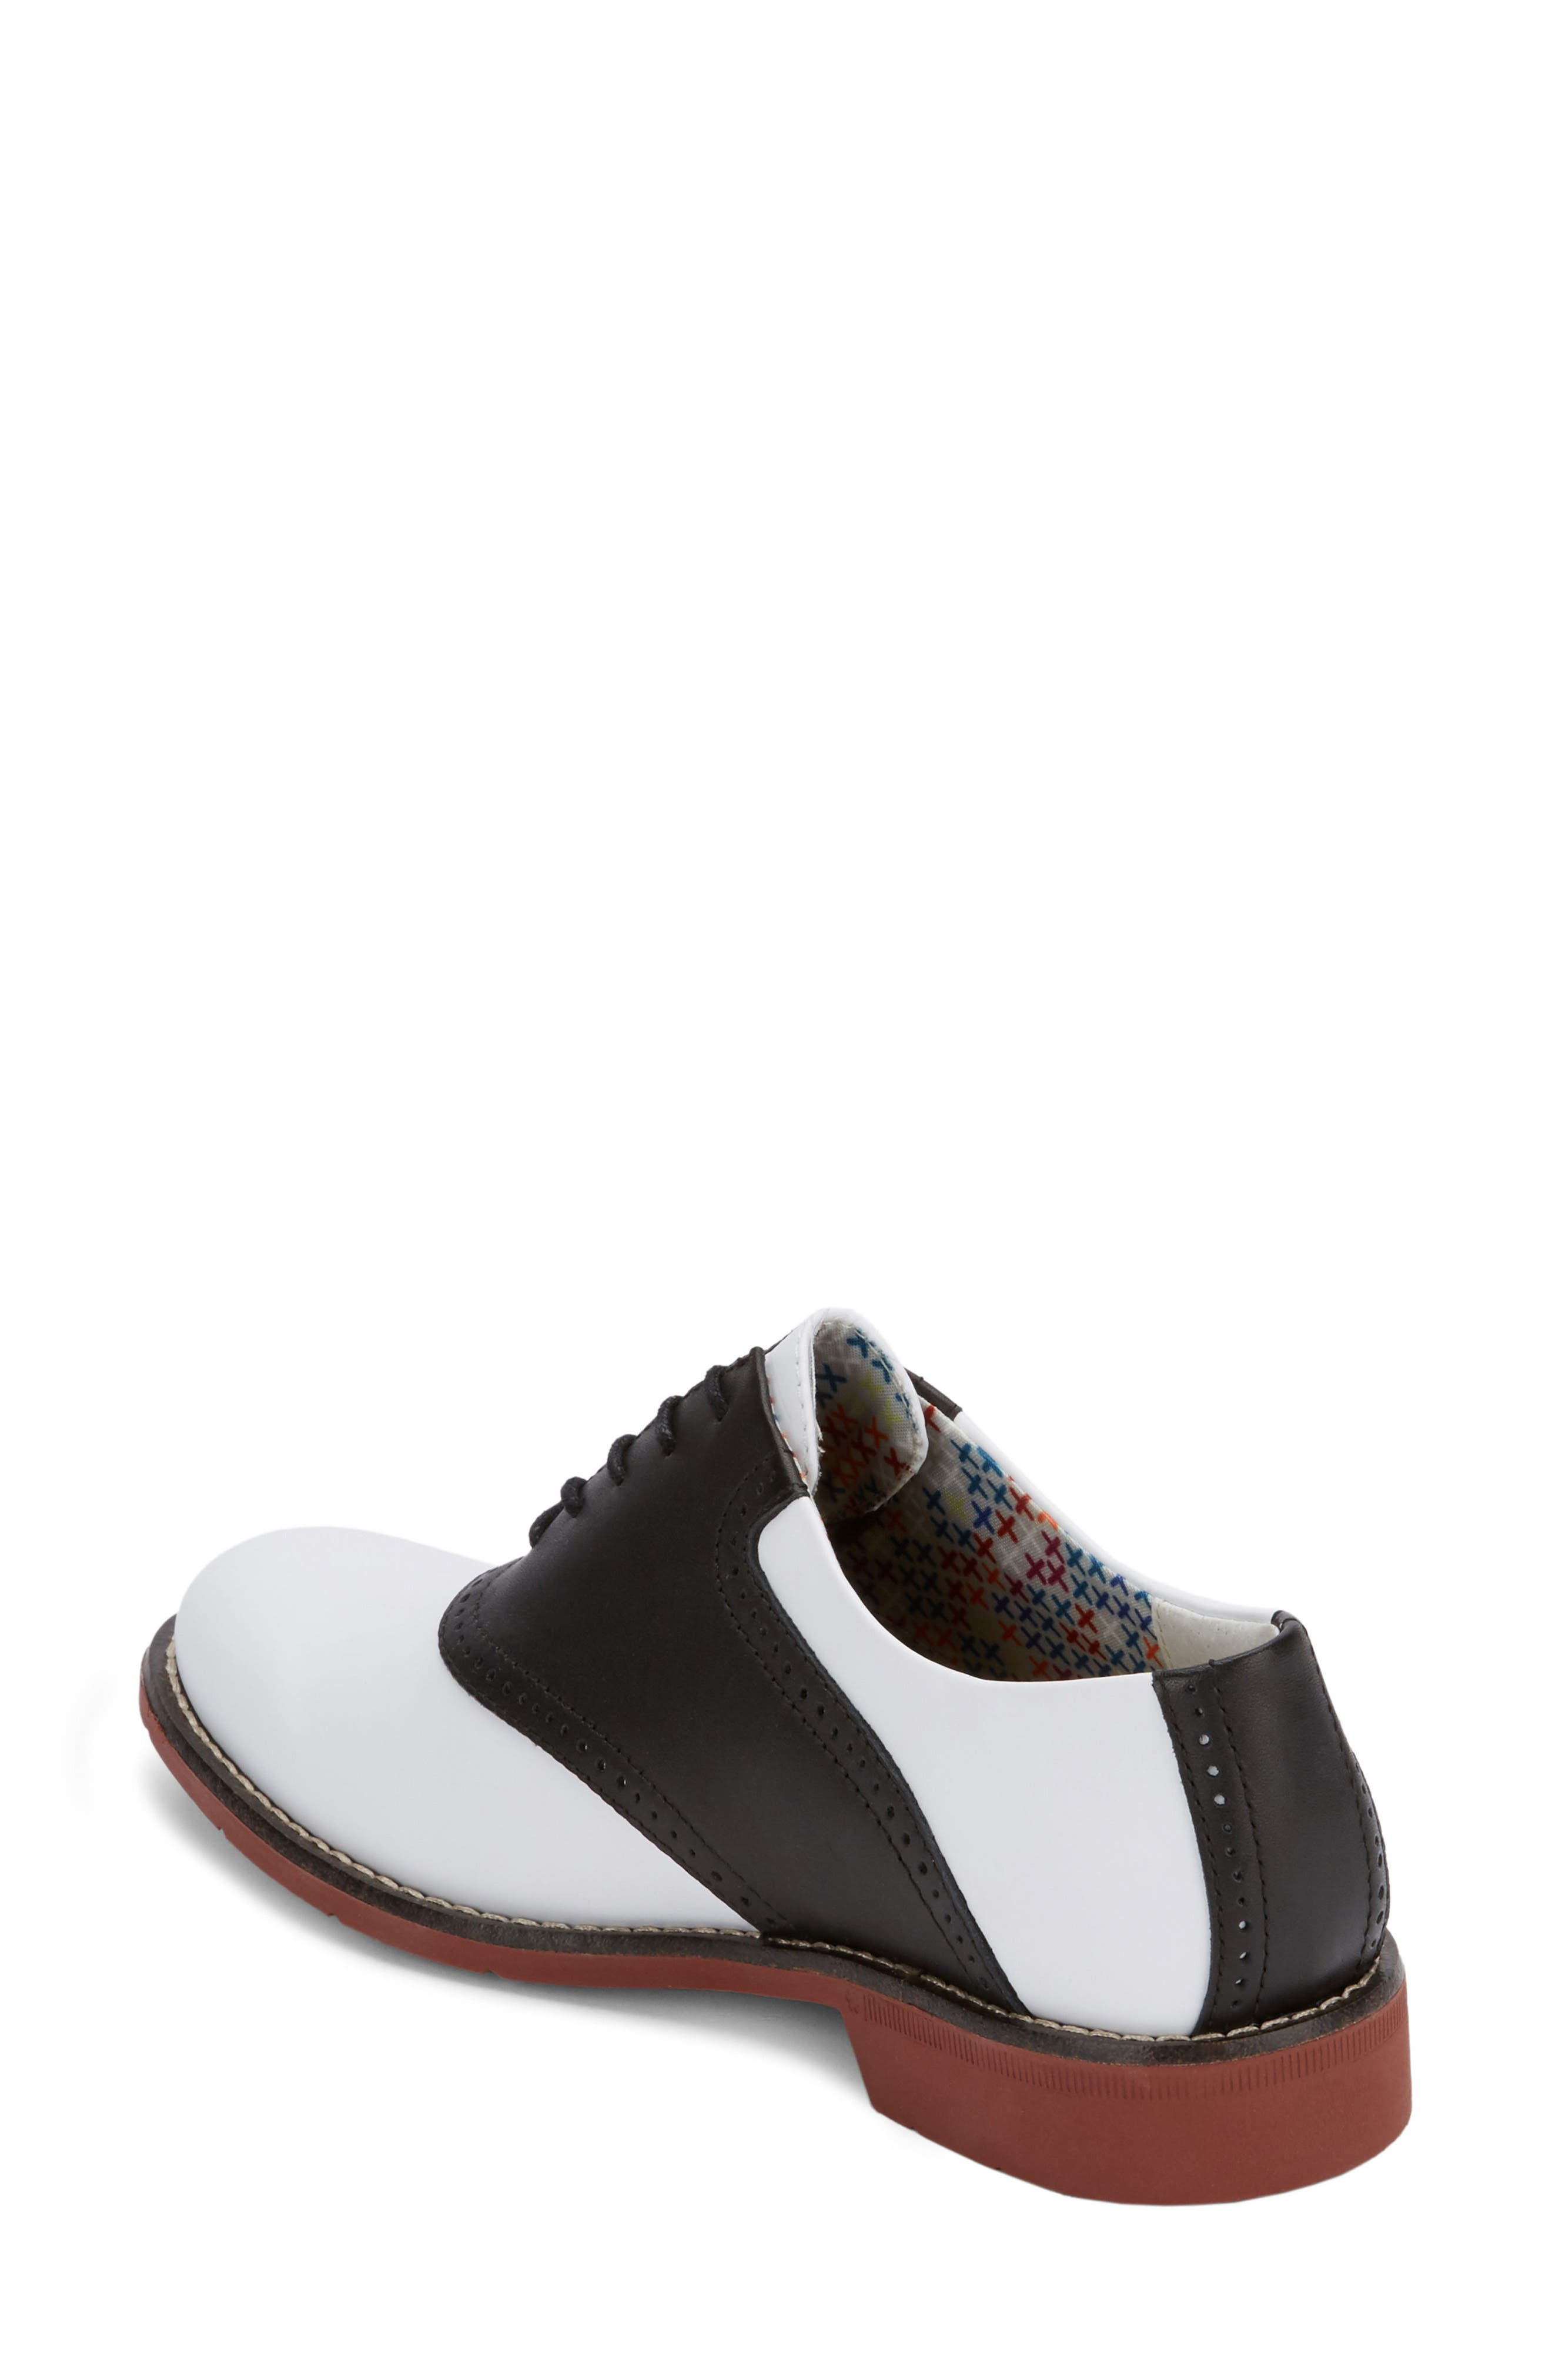 G.H. Bass and Co. Dora Lace-Up Oxford,                             Alternate thumbnail 2, color,                             BLACK/ WHITE LEATHER